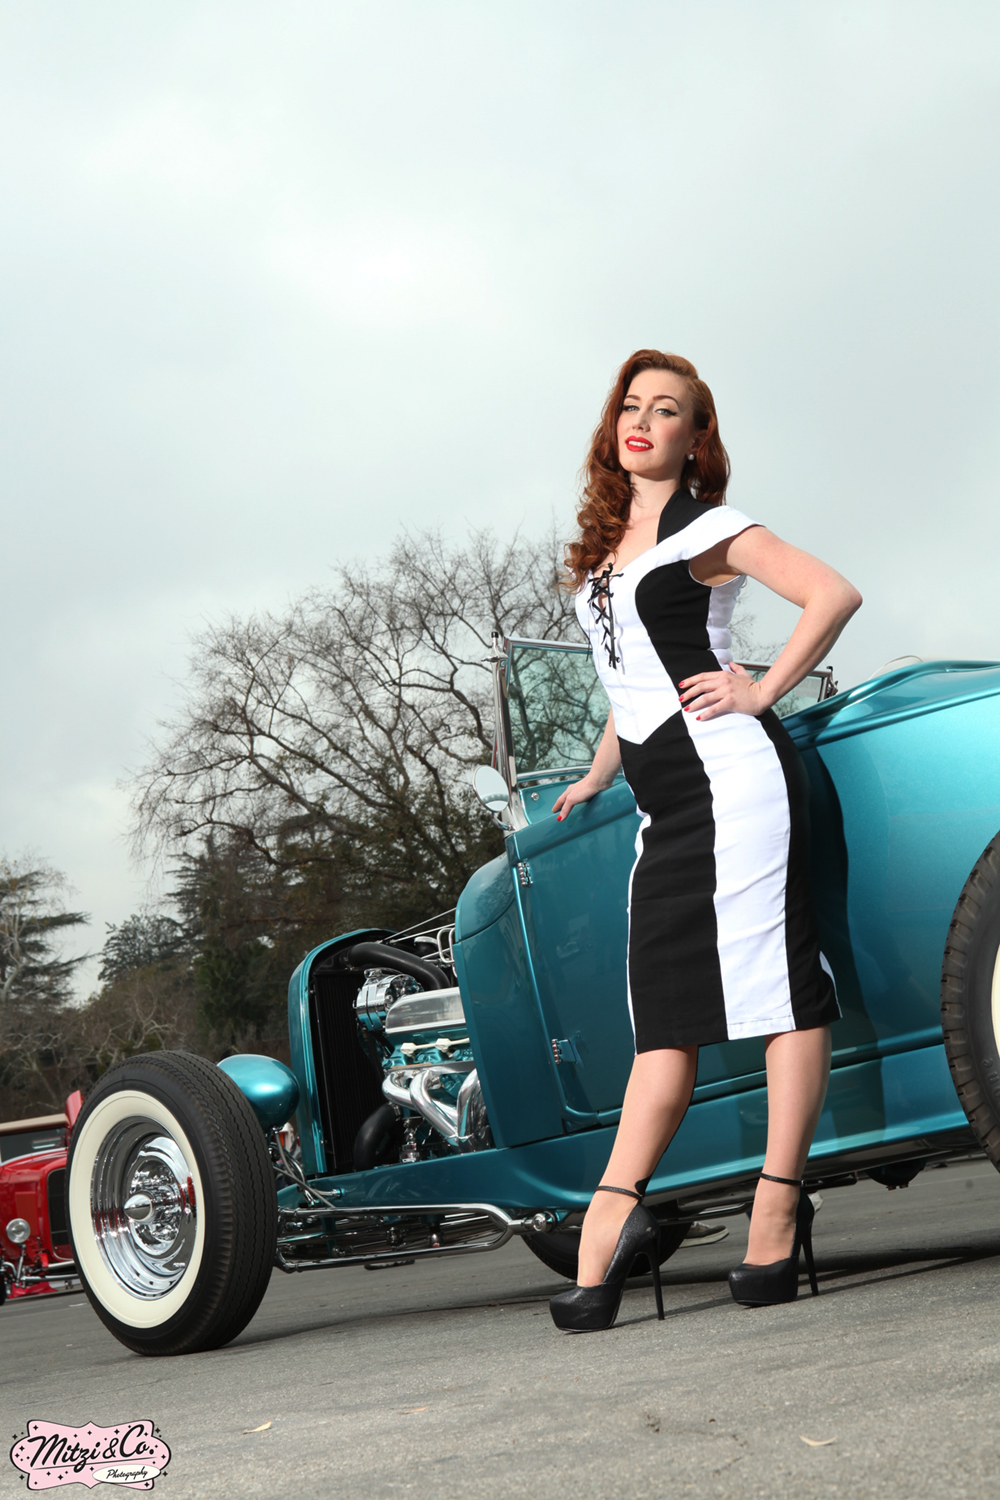 Pinup of the Week: Millie Michelle